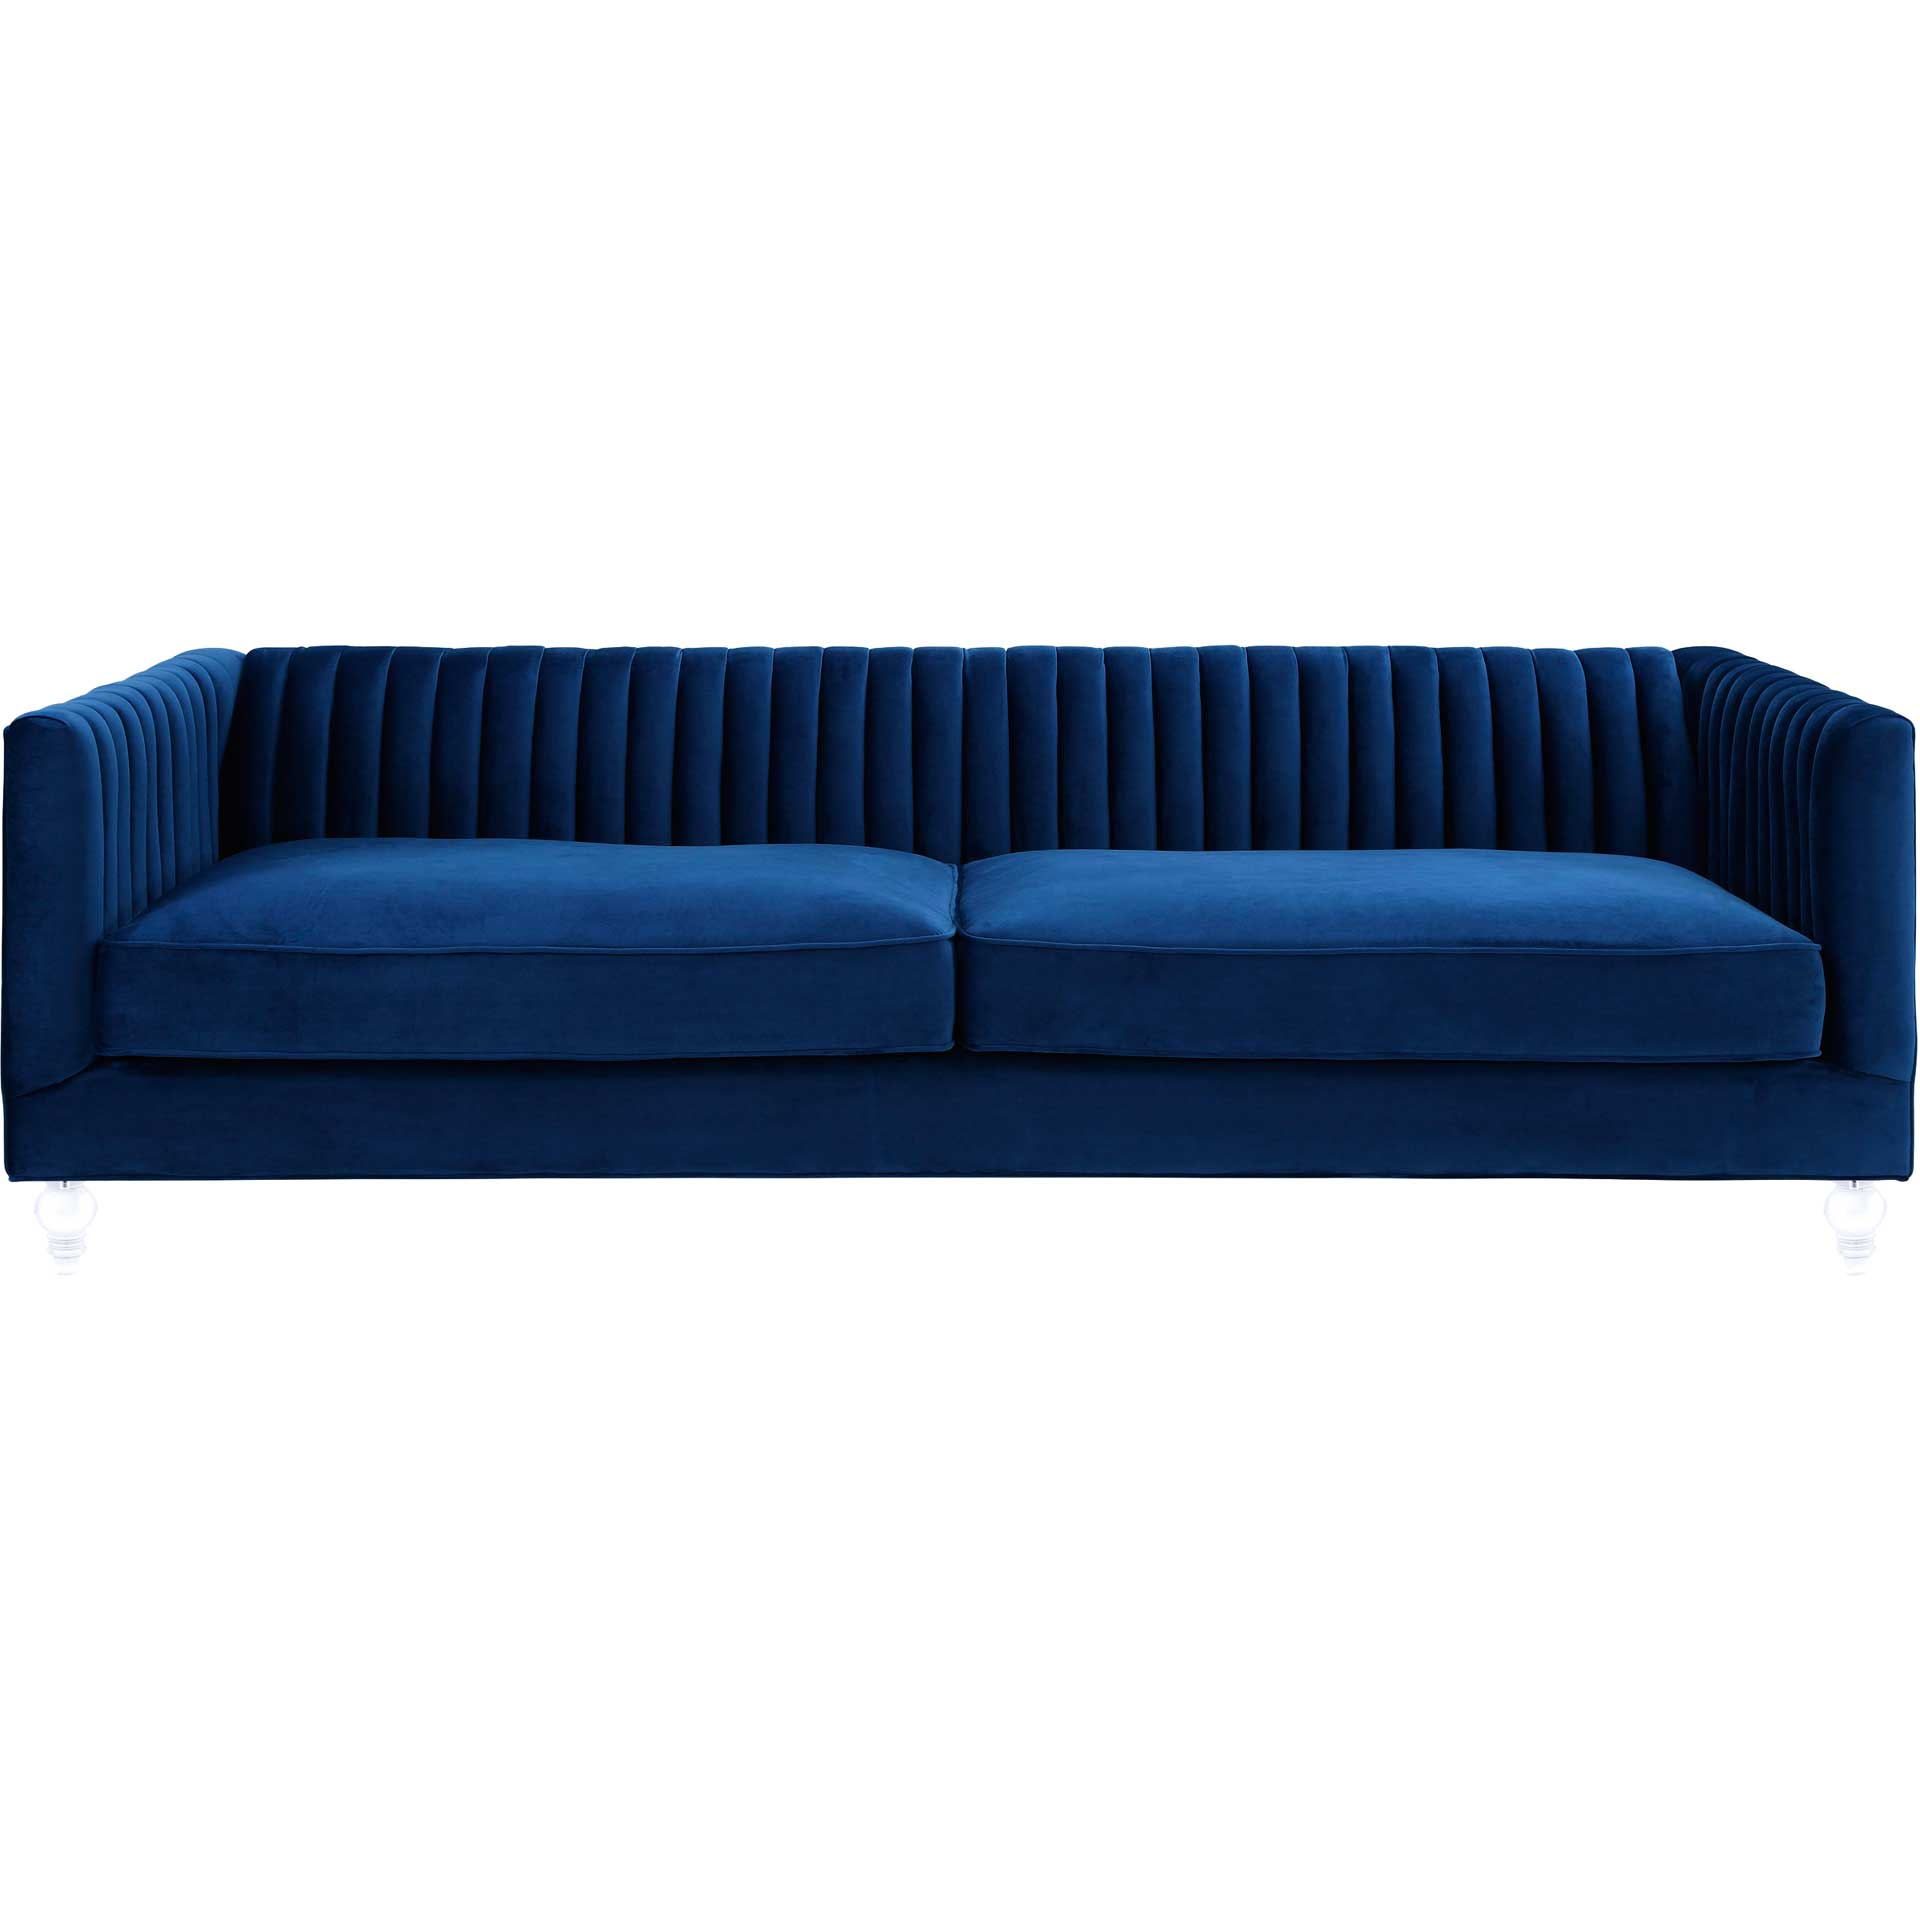 Aviate Blue Velvet Sofa